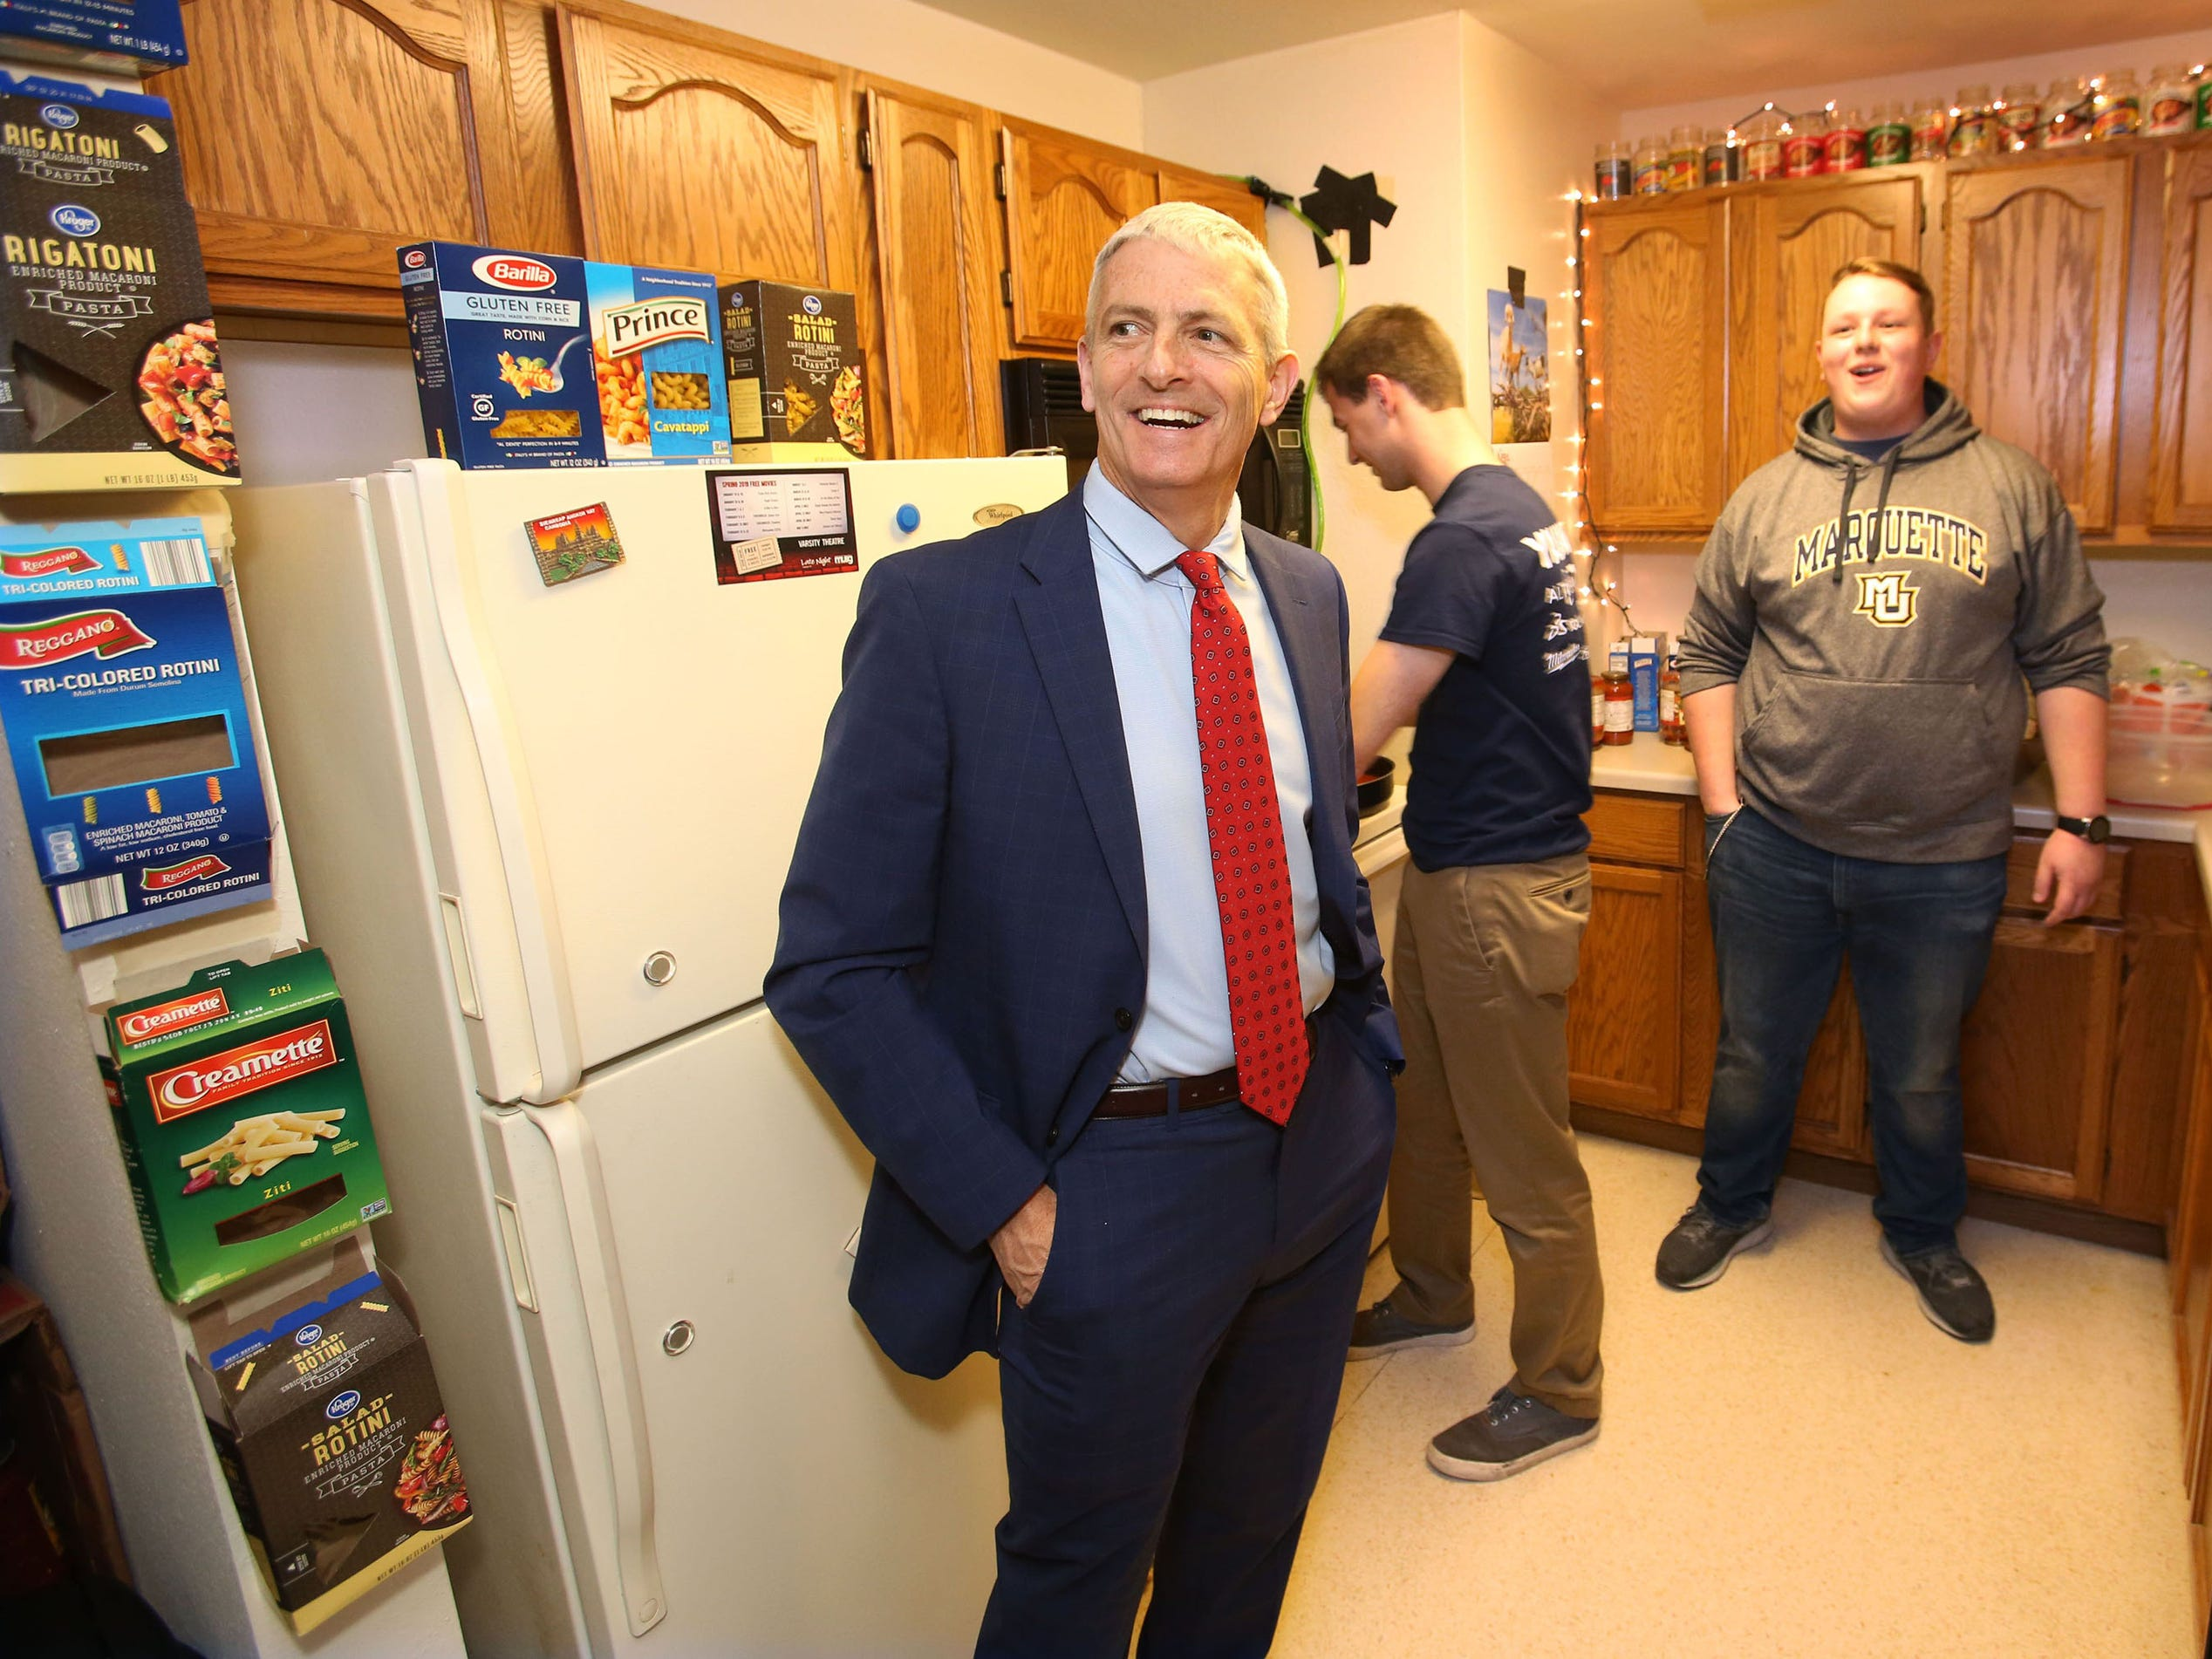 Marquette University President Michael Lovell admires the kitchen at 526 Pasta and the way it's been decorated with empty pasta boxes and sauce cans.